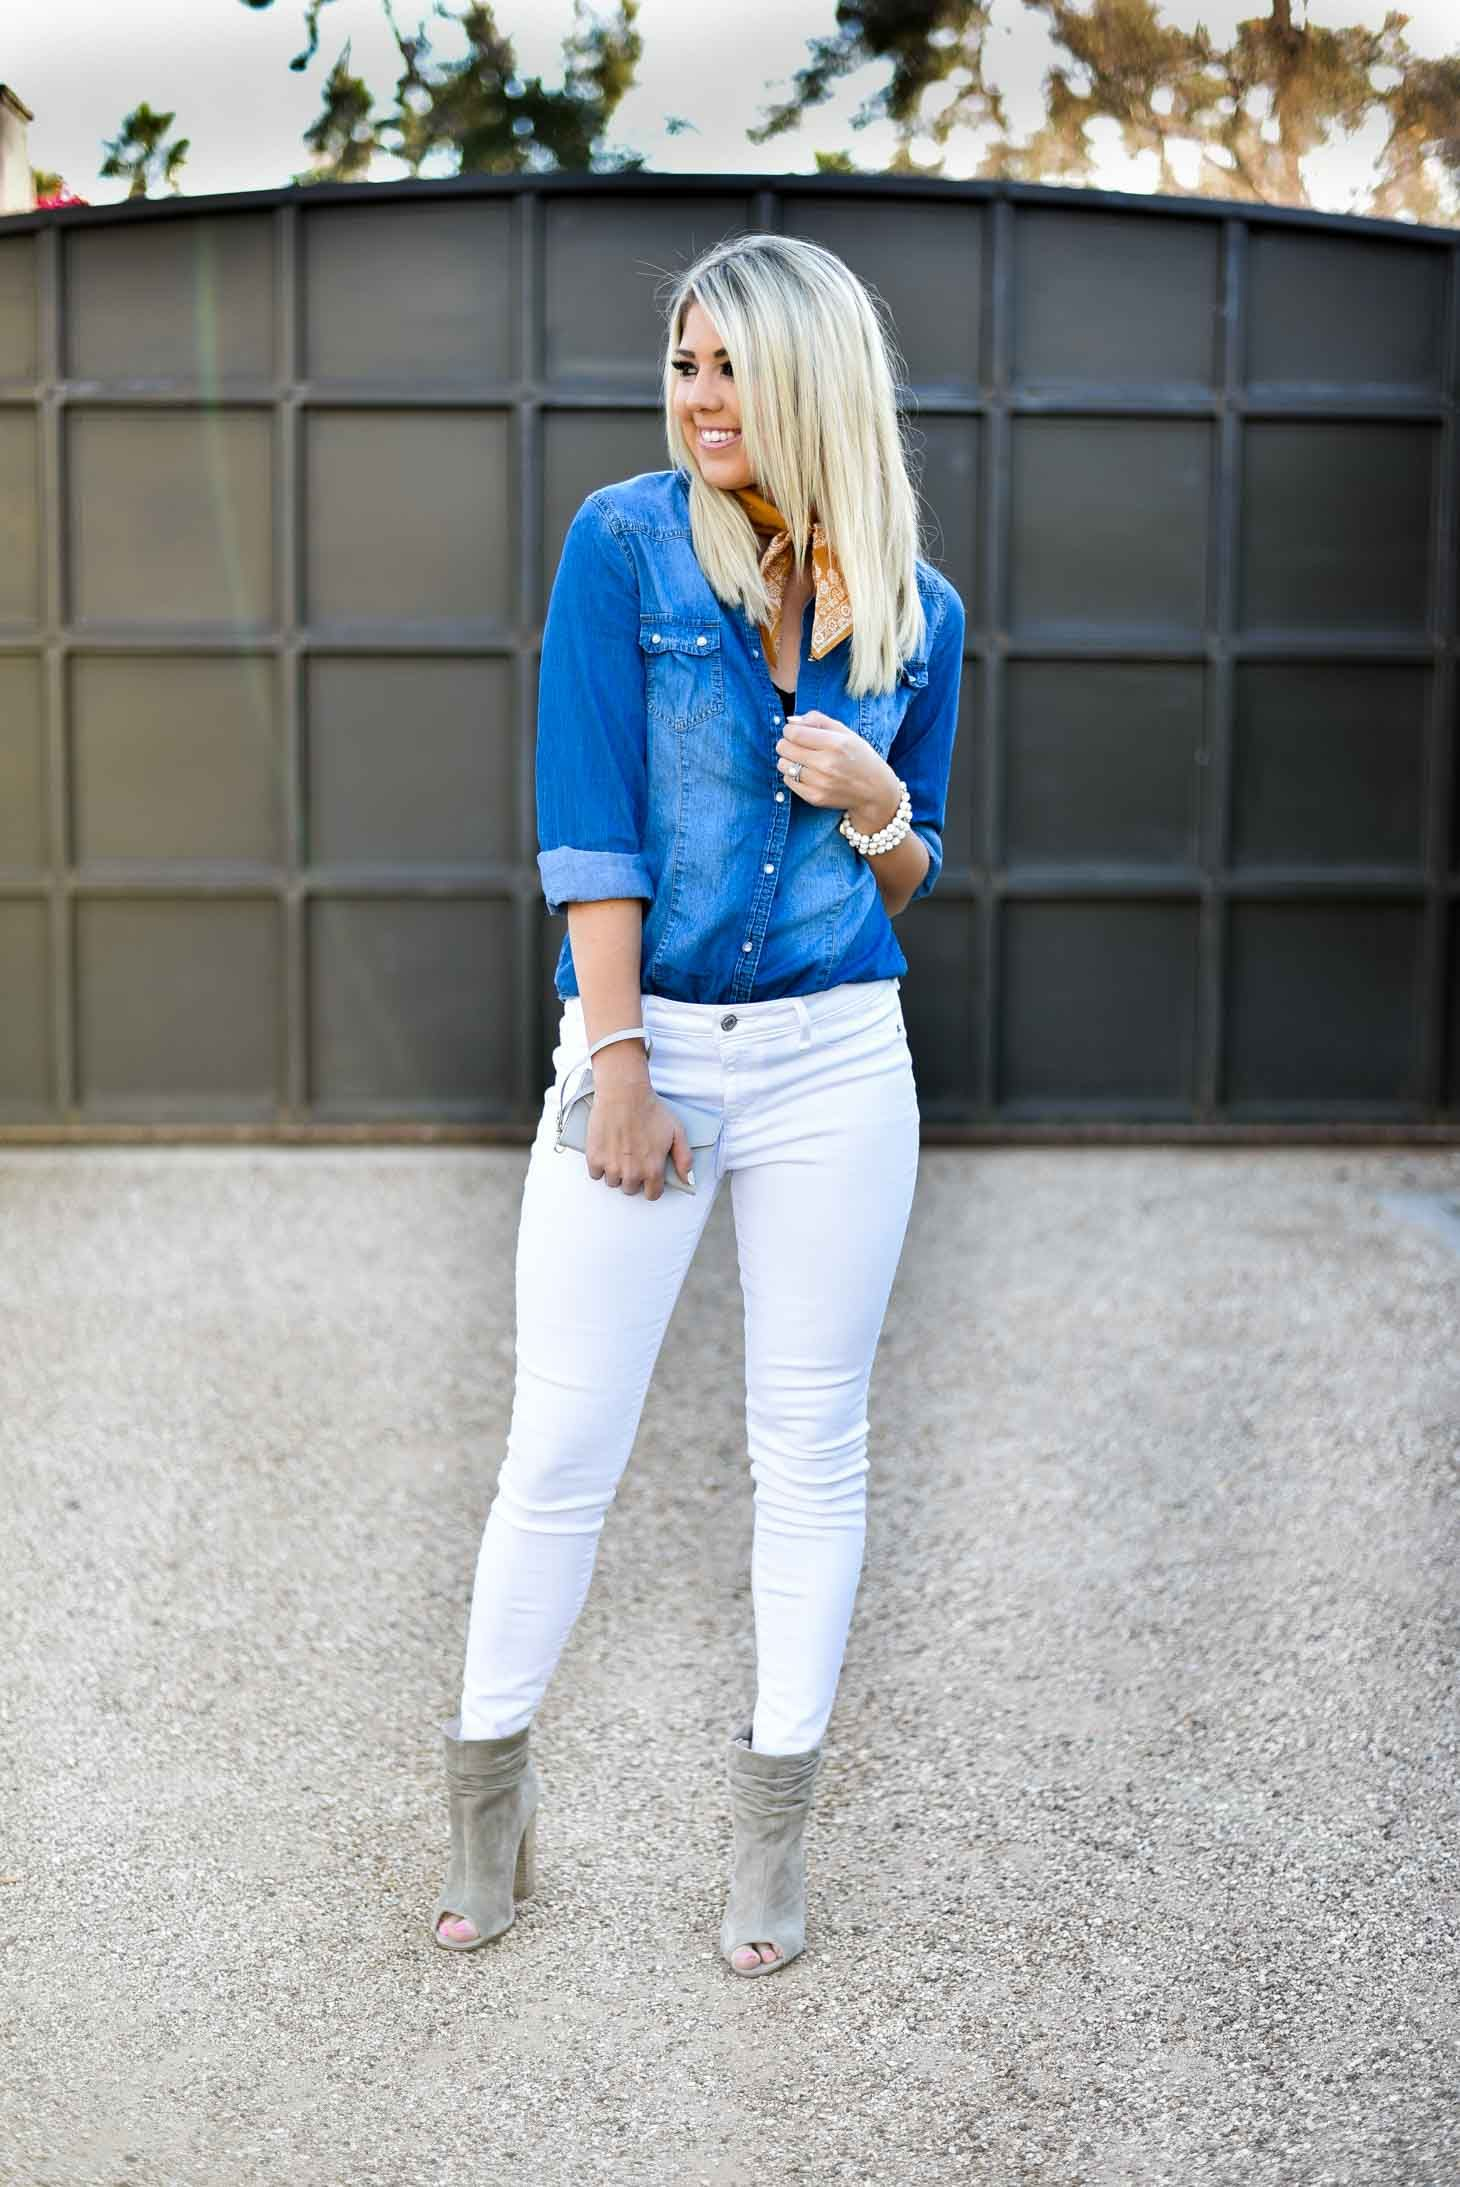 Erin Elizabeth of Wink and a Twirl Spring Style #SpringStyle #SpringLook #SpringOutfit #Chambray #DenimAndWhite